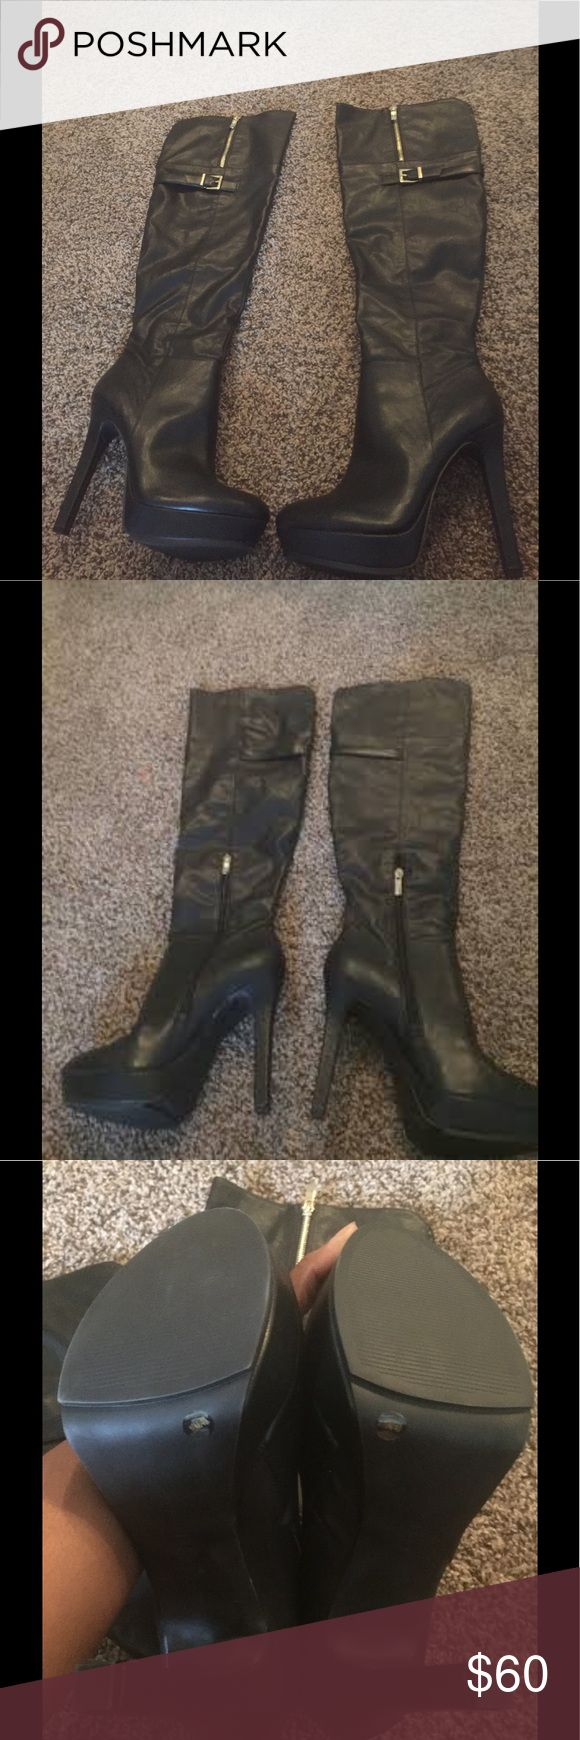 Women's BCBG Over the Knee Black Boots Black, 5in heel, New without Tags BCBGeneration Shoes Over the Knee Boots